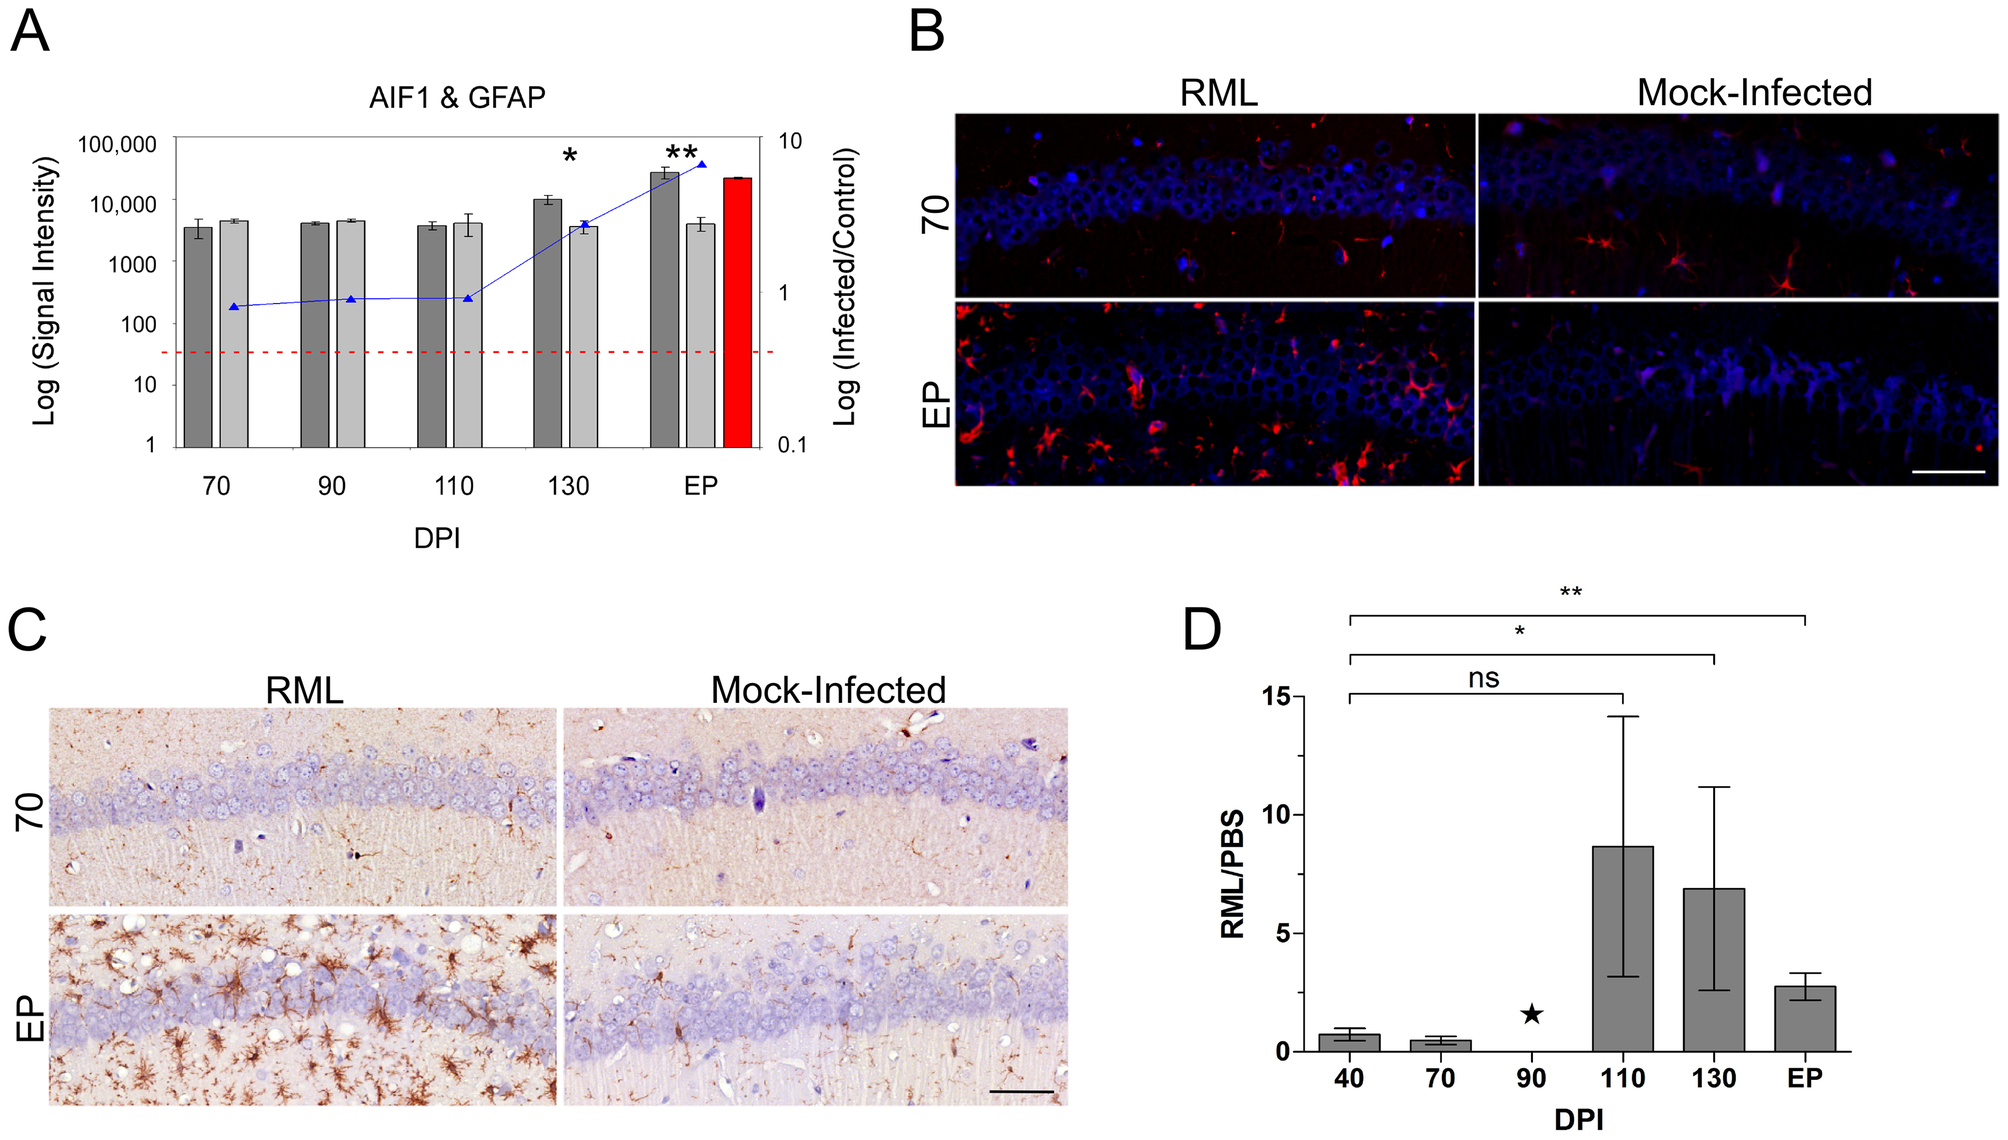 The distribution of resident immune cells in the CA1 hippocampal region of both control and prion infected mice.